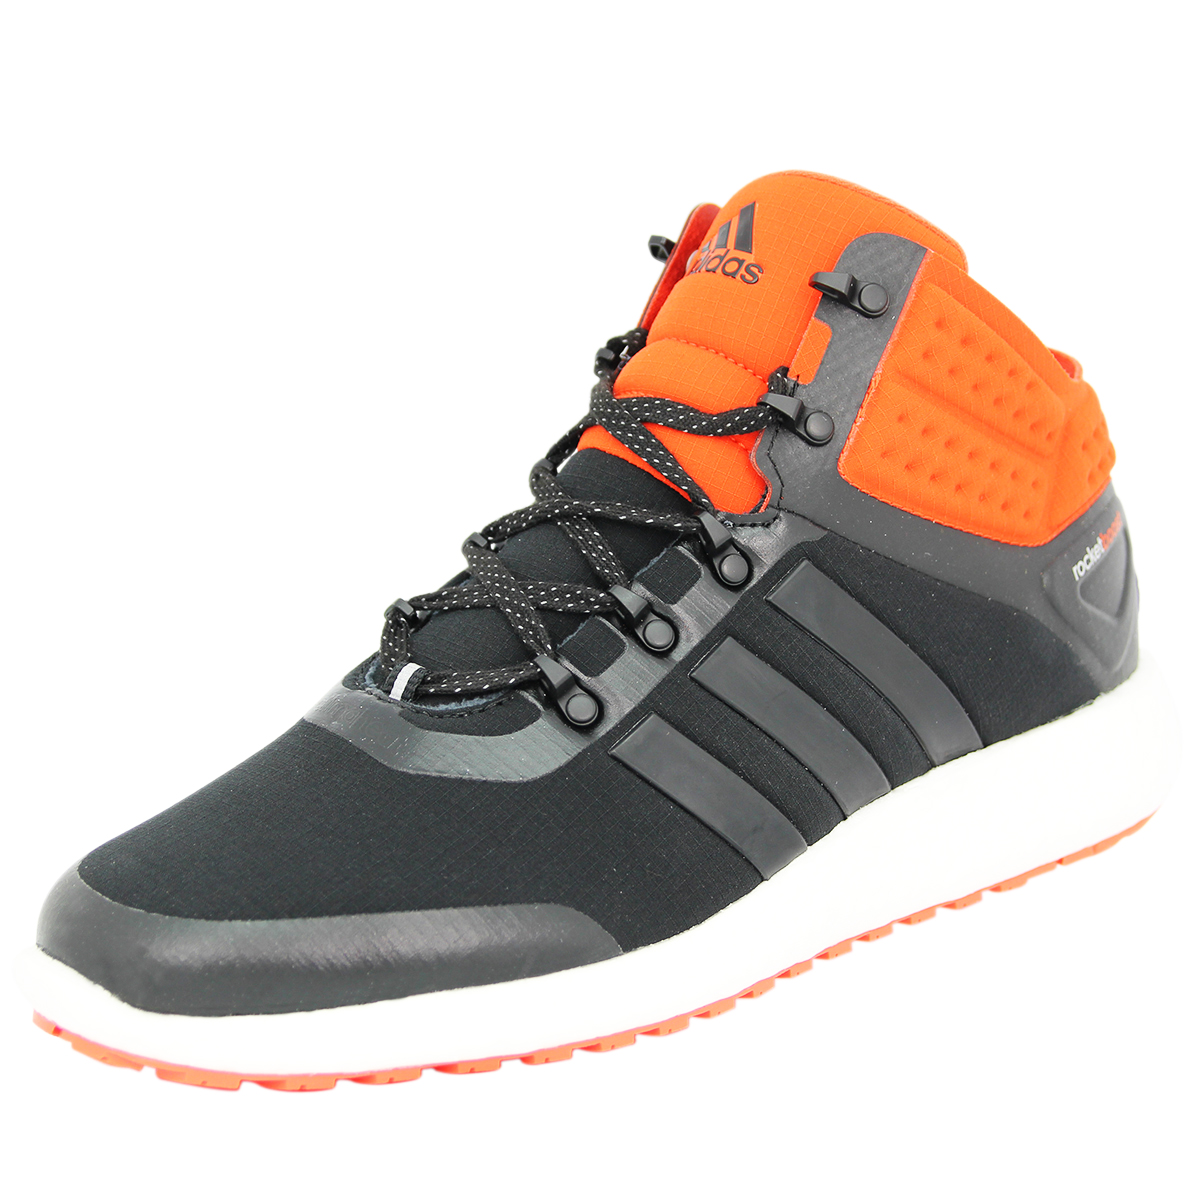 Rocket Mid Performance Mode Boost Climaheat Chaussures Adidas Cut eCxdBo